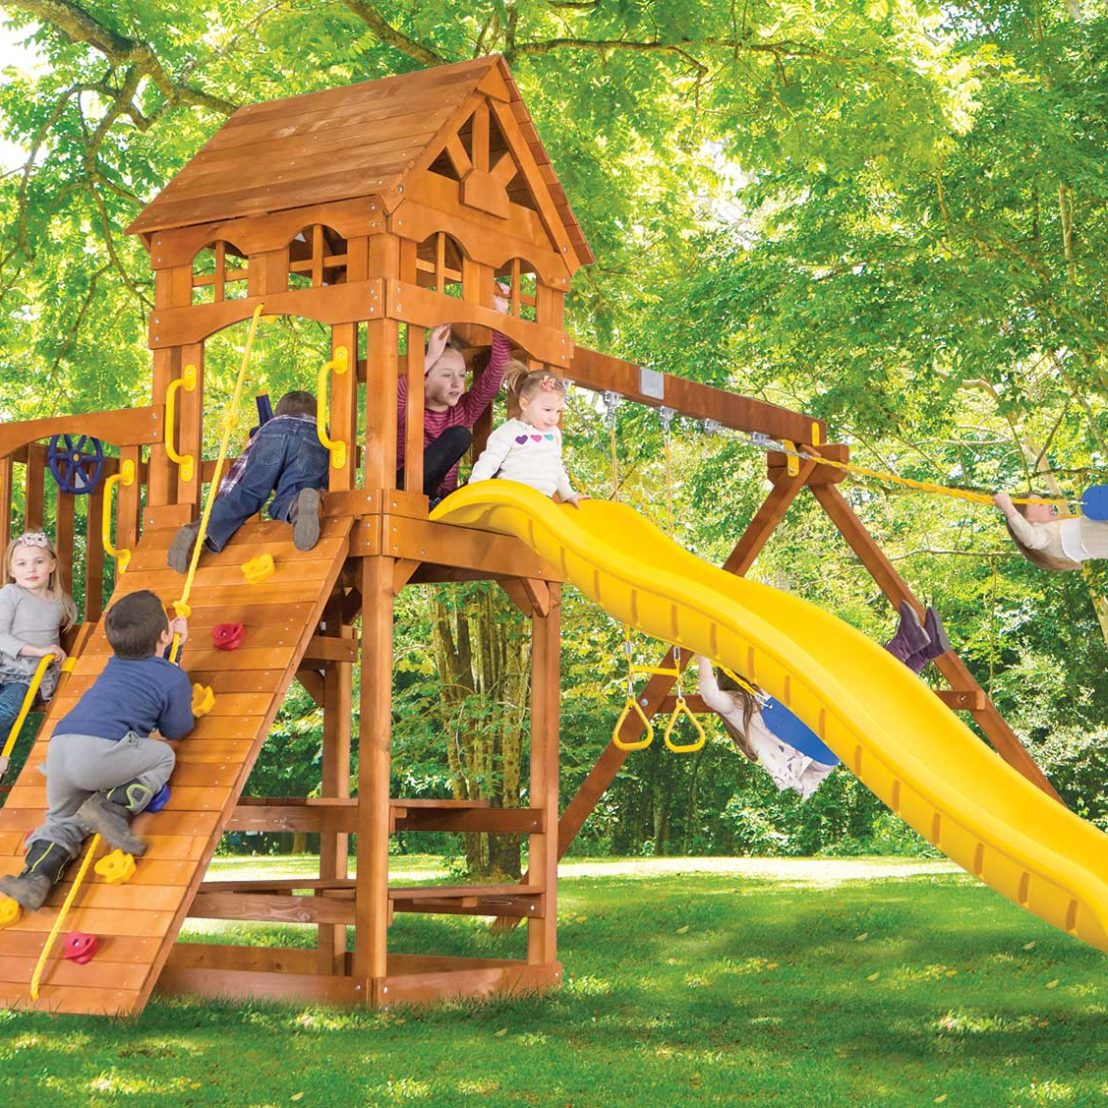 Fiesta Super Funhouse Wooden Swing Set